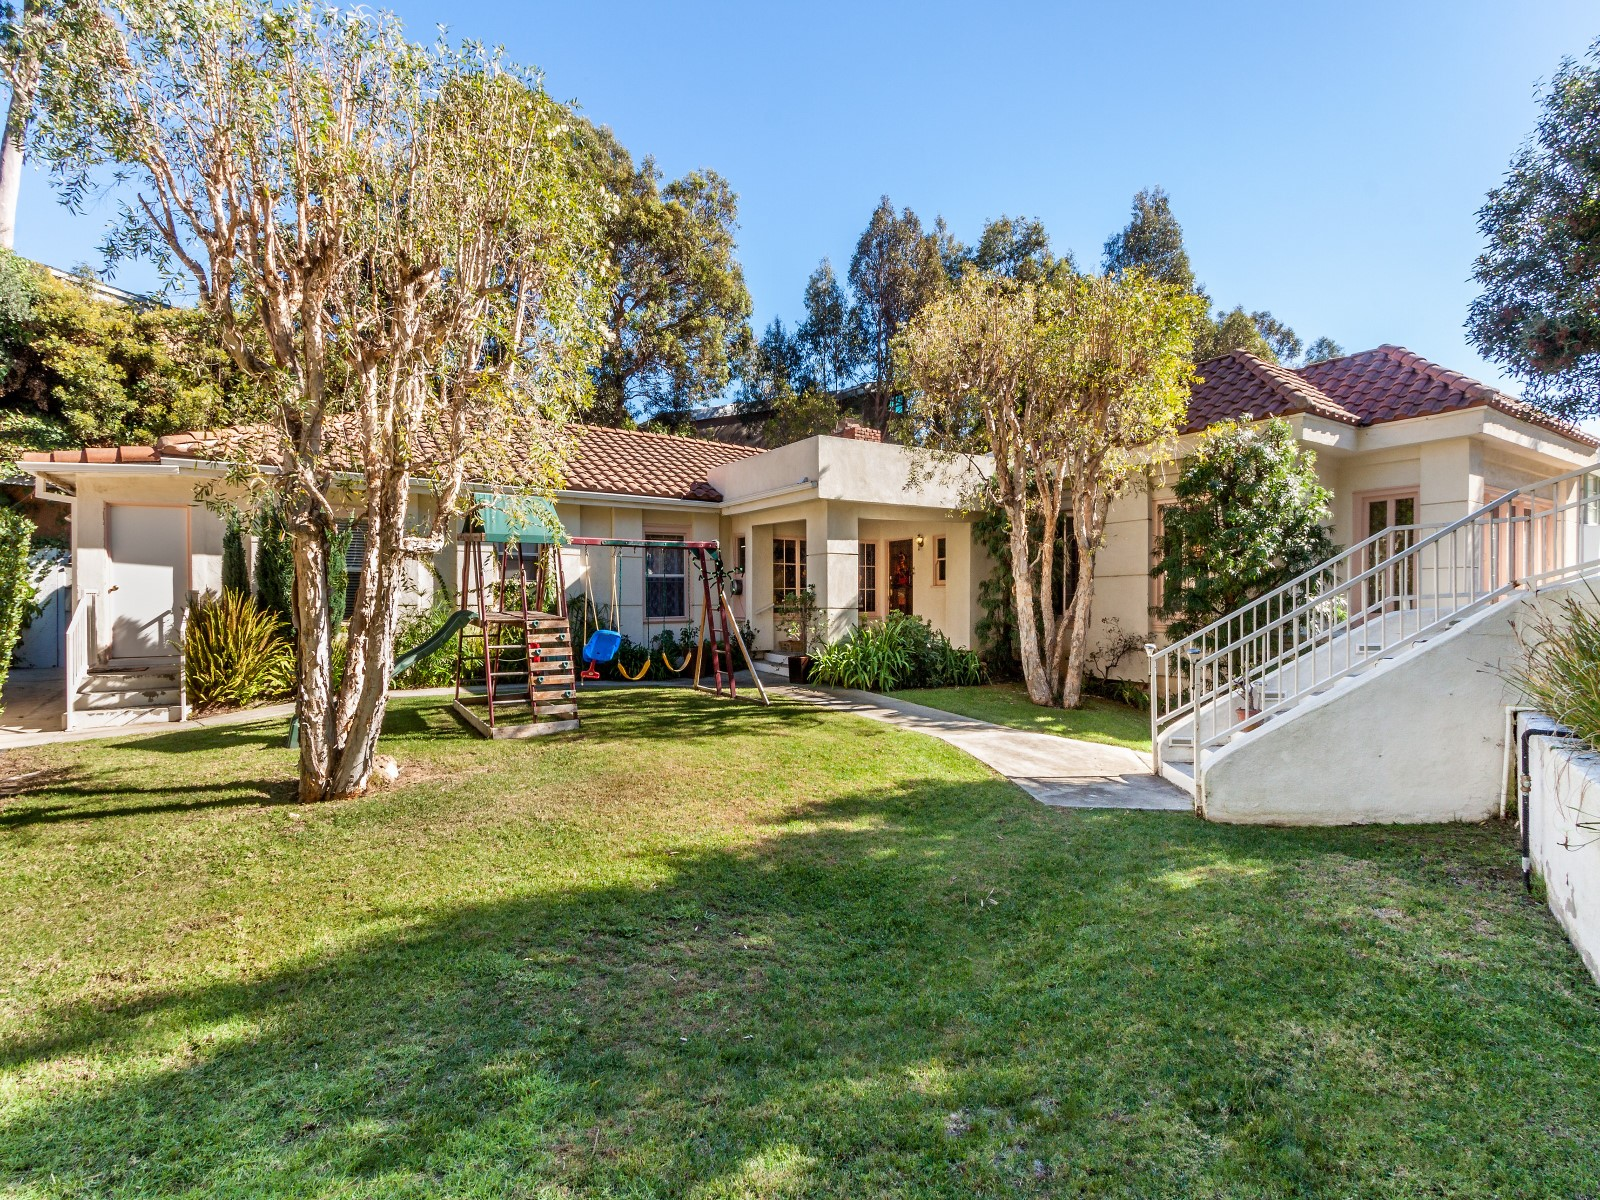 Single Family Home for Sale at Unique Home Near Heart of the Village 764 Patterson Place Pacific Palisades, California 90272 United States